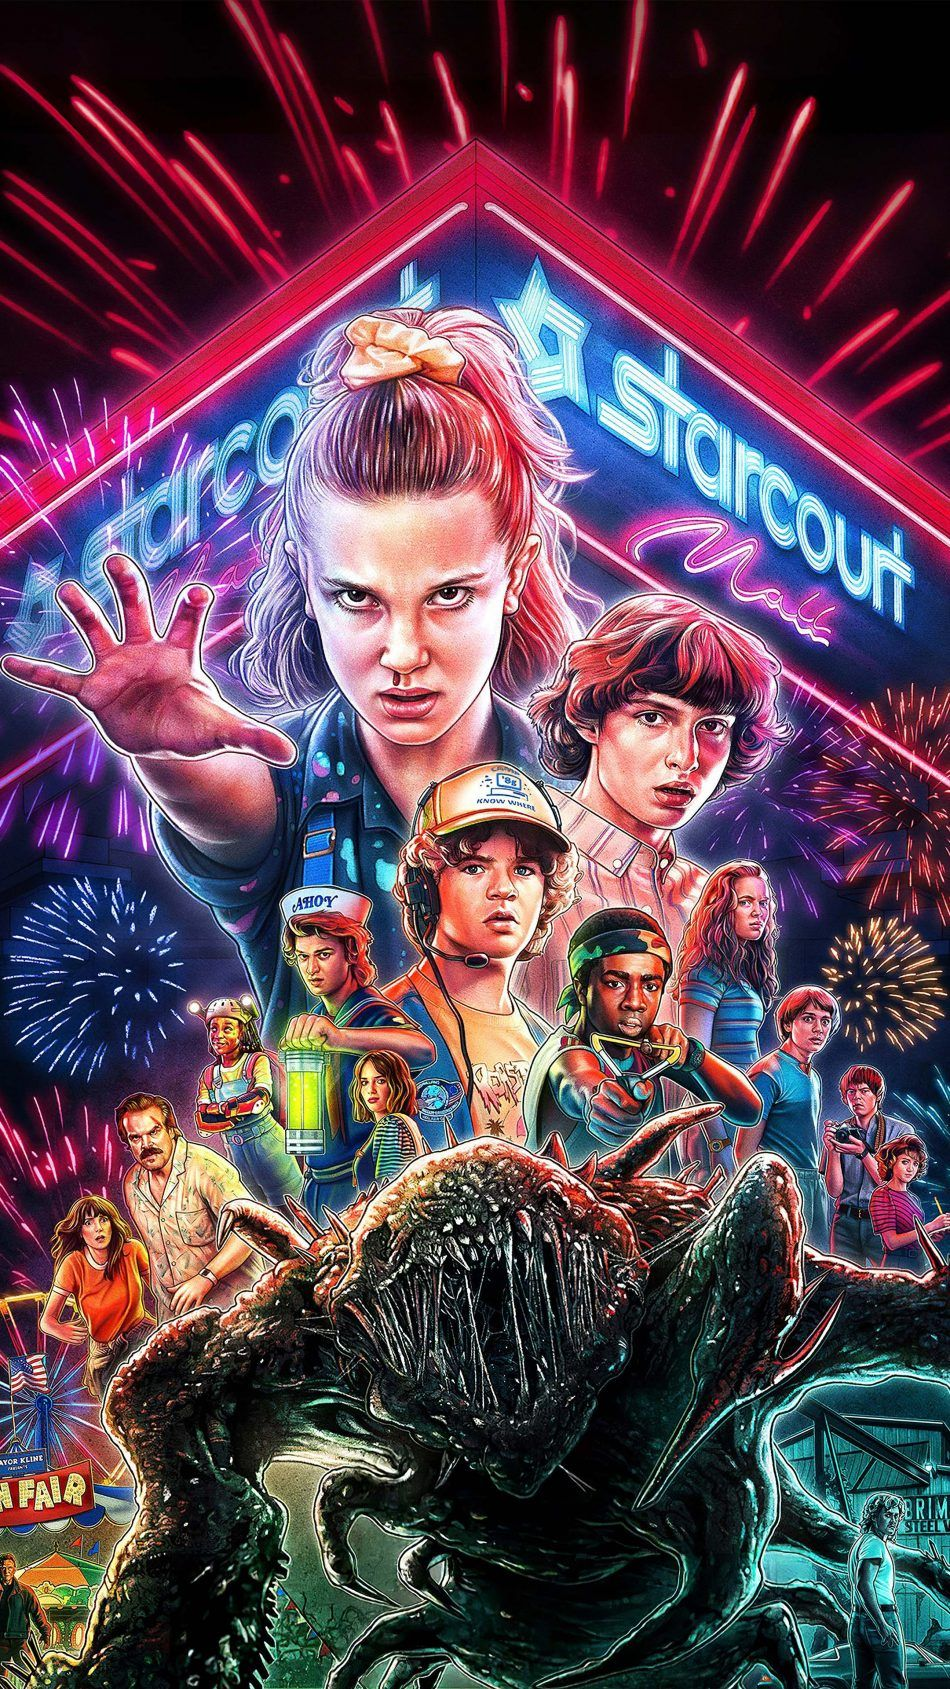 Stranger things season 3 artwork tv series wallpapers - Tv series wallpaper 4k ...